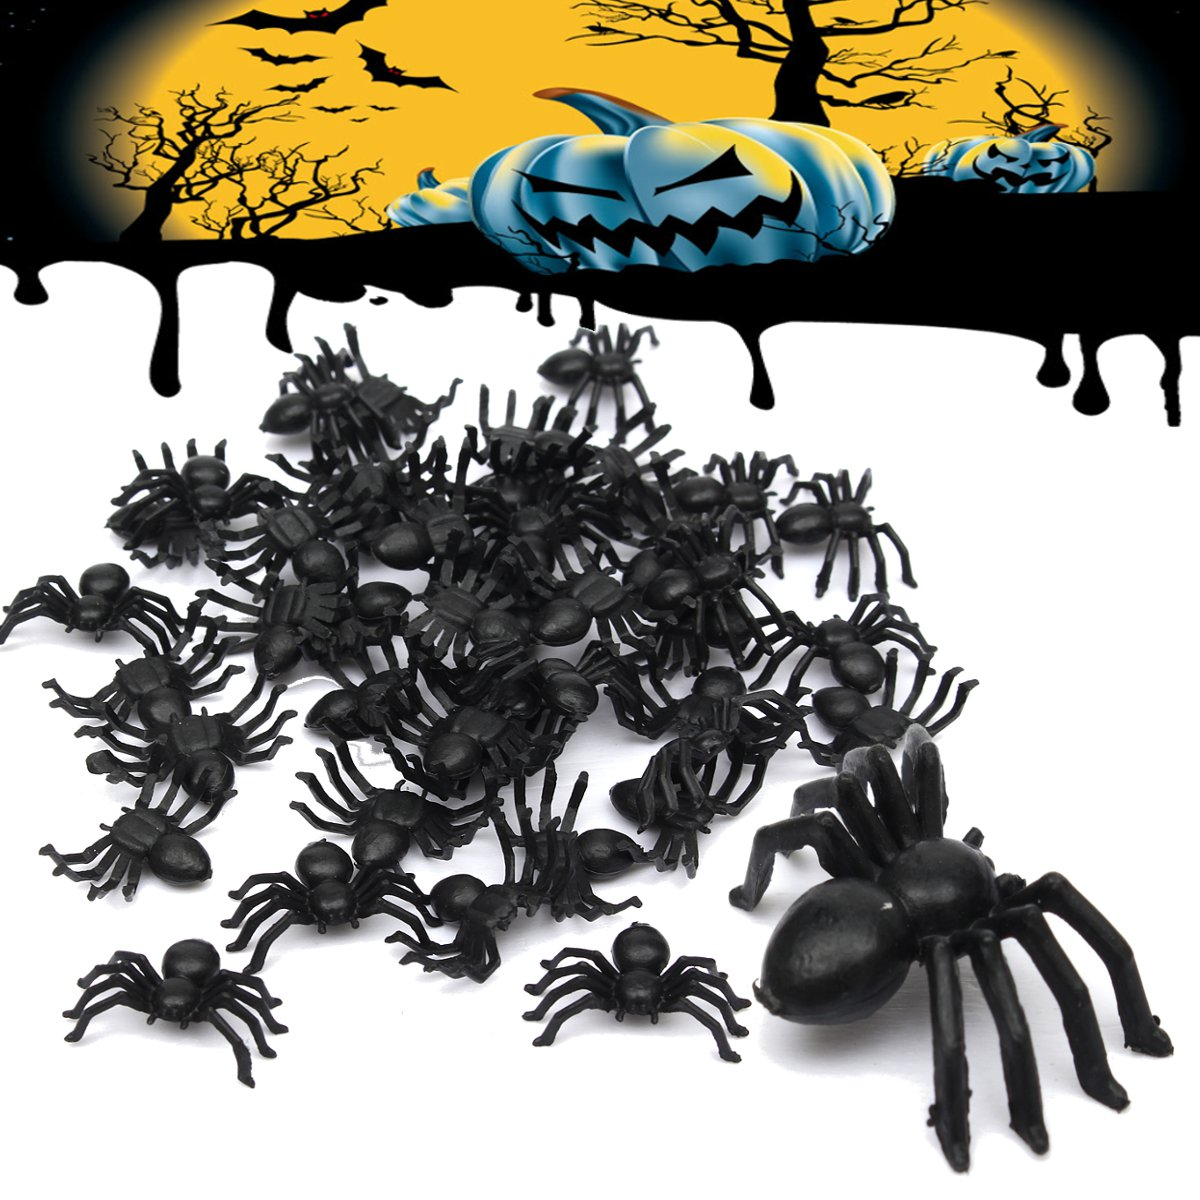 50Pcs/Set Halloween Decorative Spiders Small Black Plastic Fake Spider Toys Novelty Funny Joke Prank Realistic Props